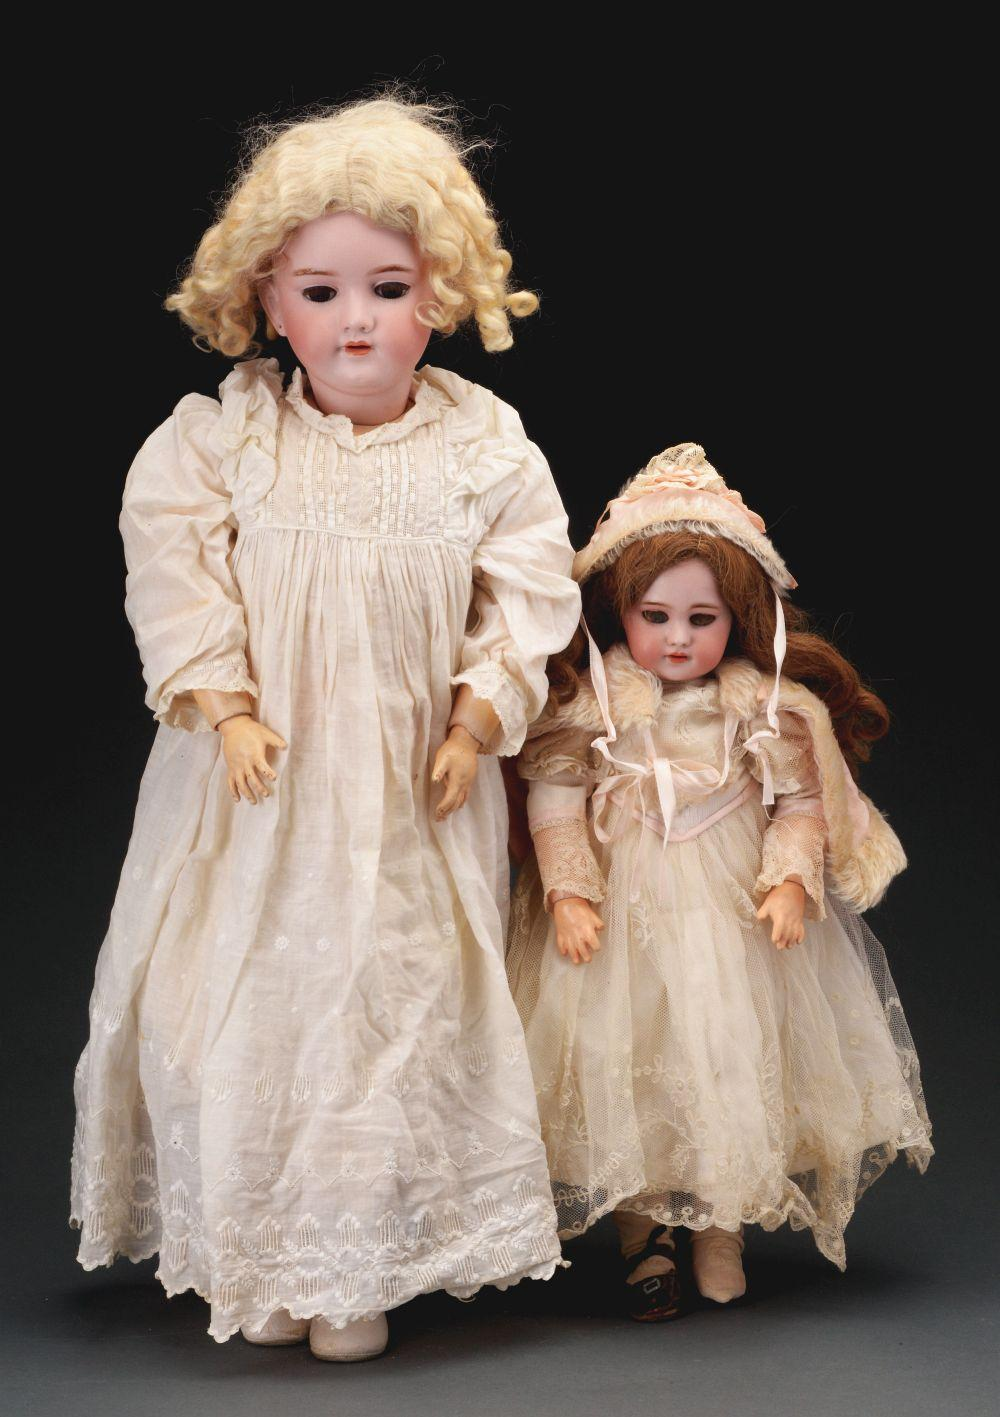 Lot of 2: Bisque Head Early 20th Century Dolls.